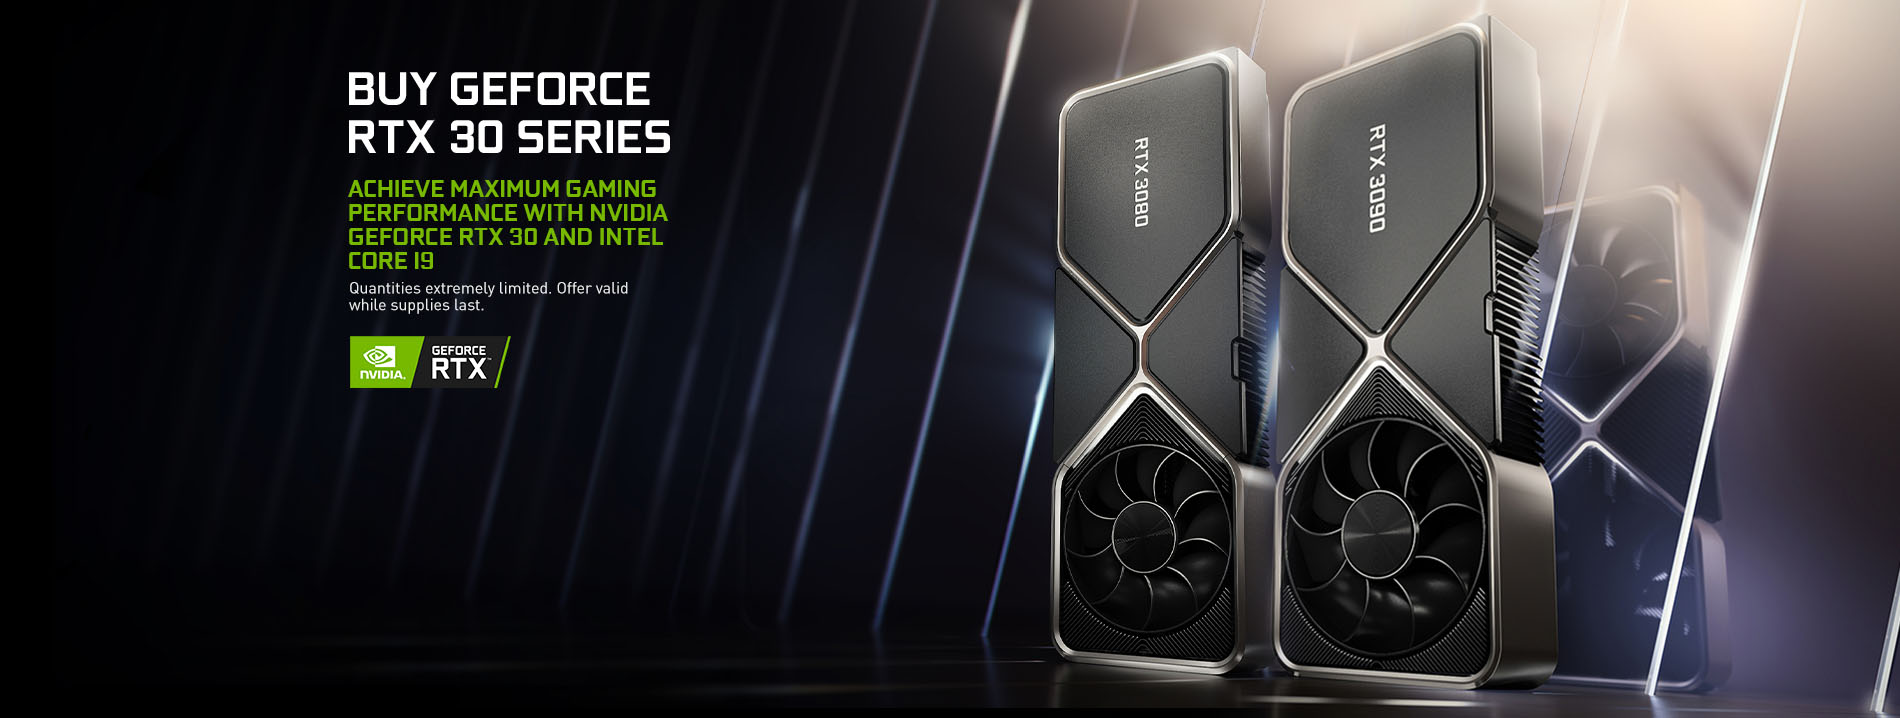 Nvidia Geforcertx30 Bundle